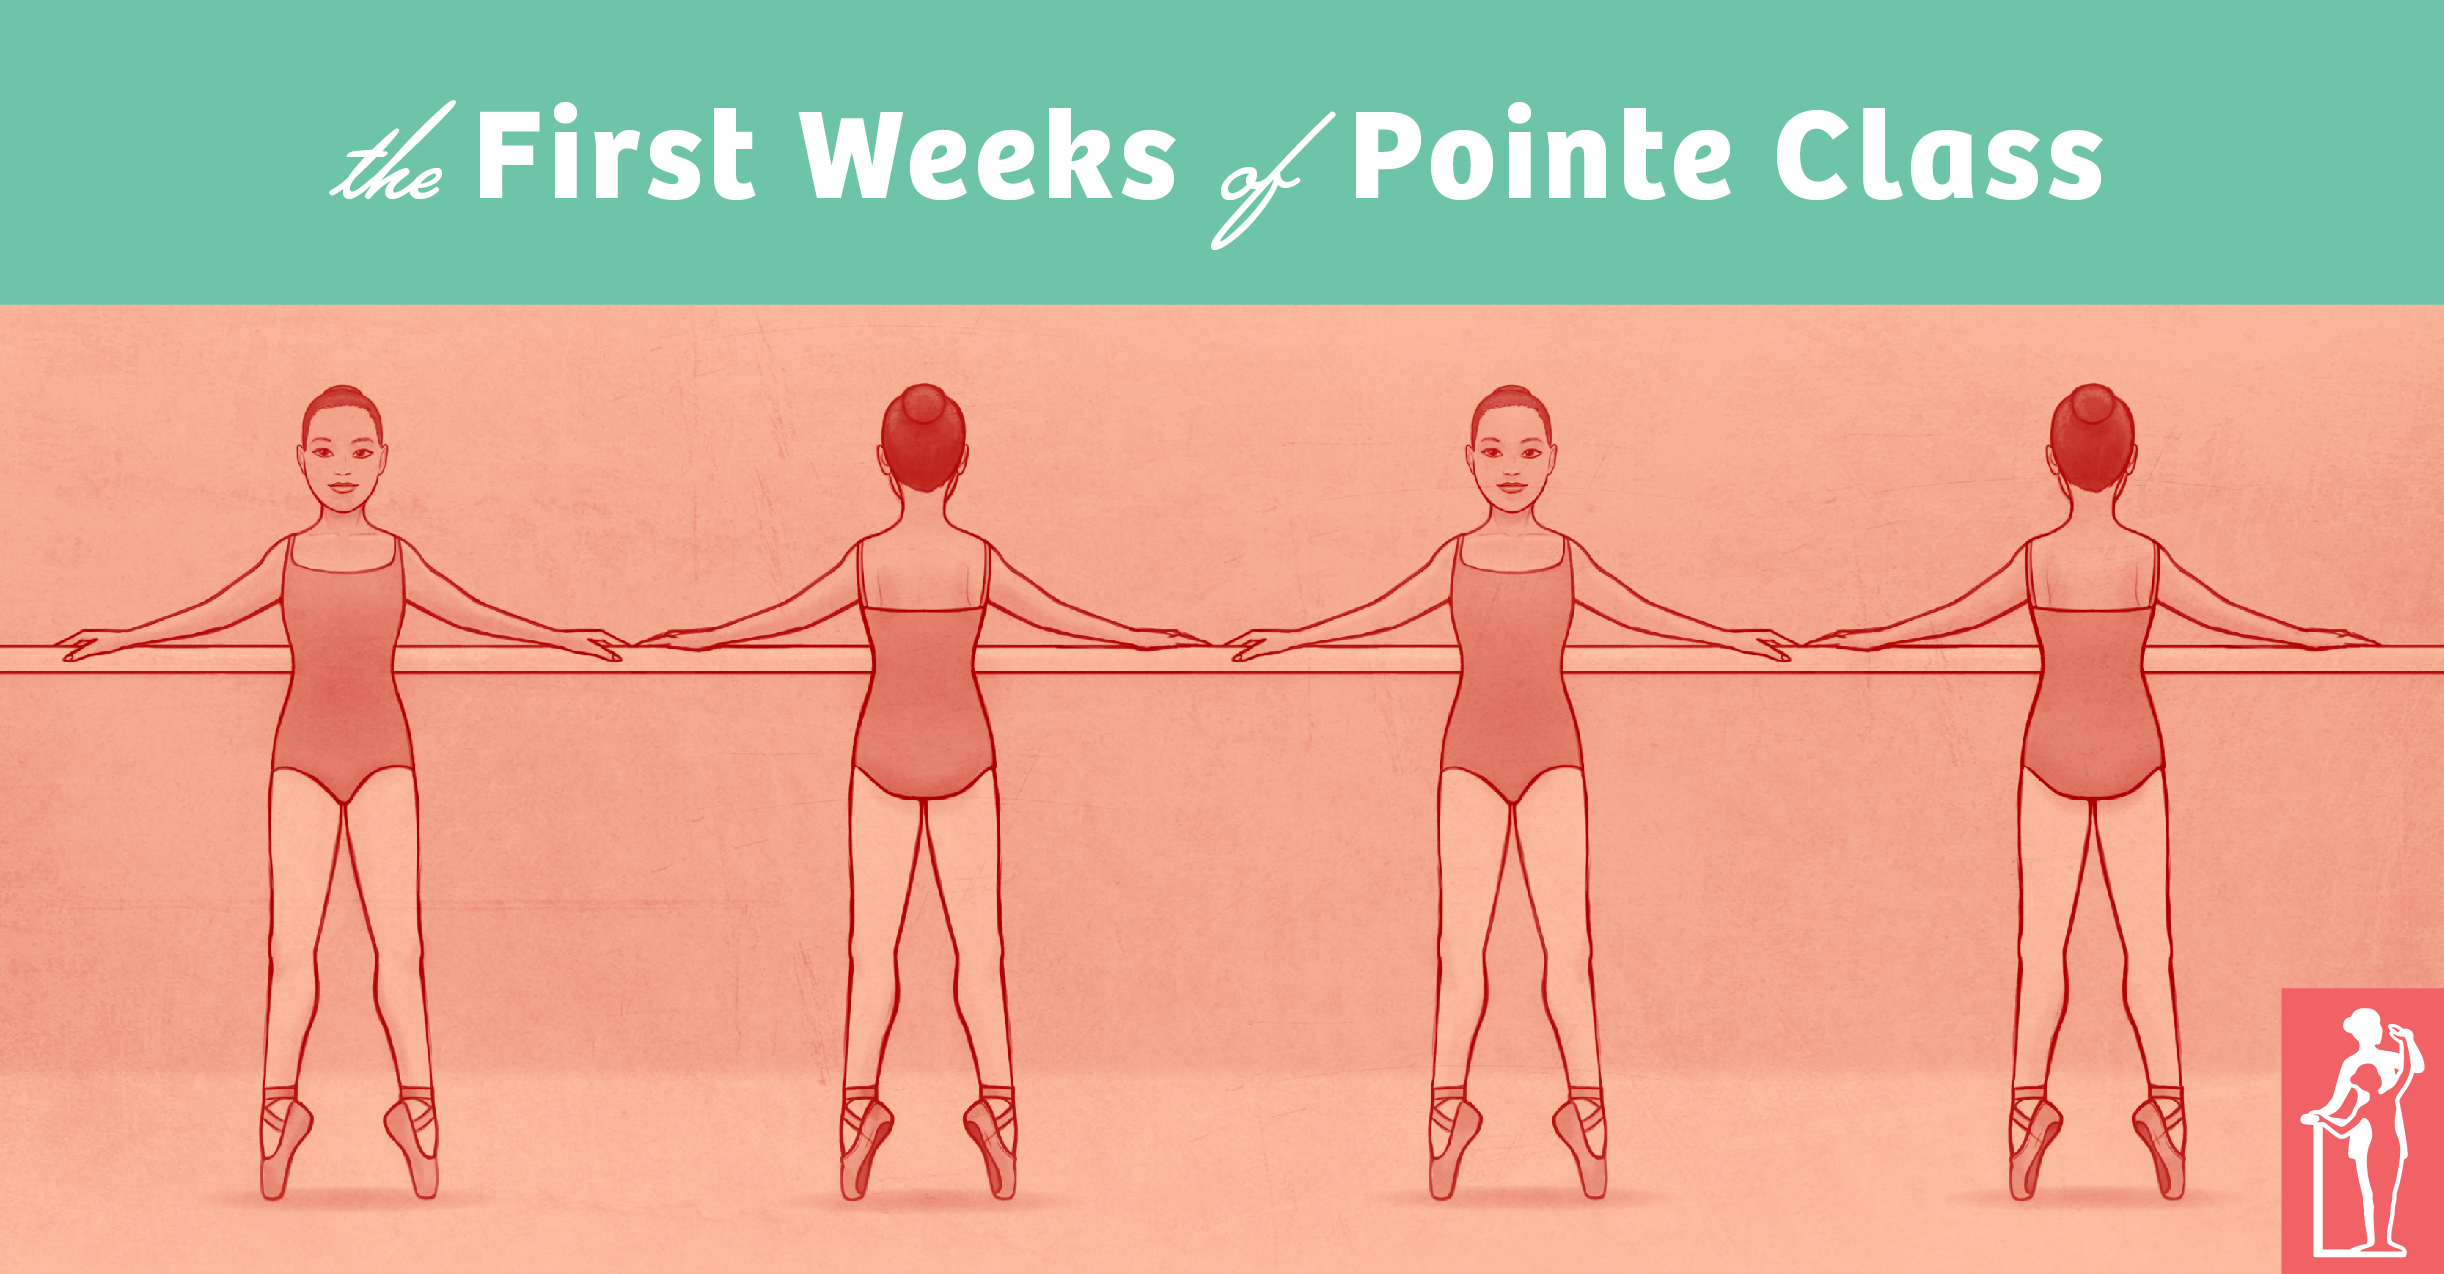 First Weeks of Pointe Class